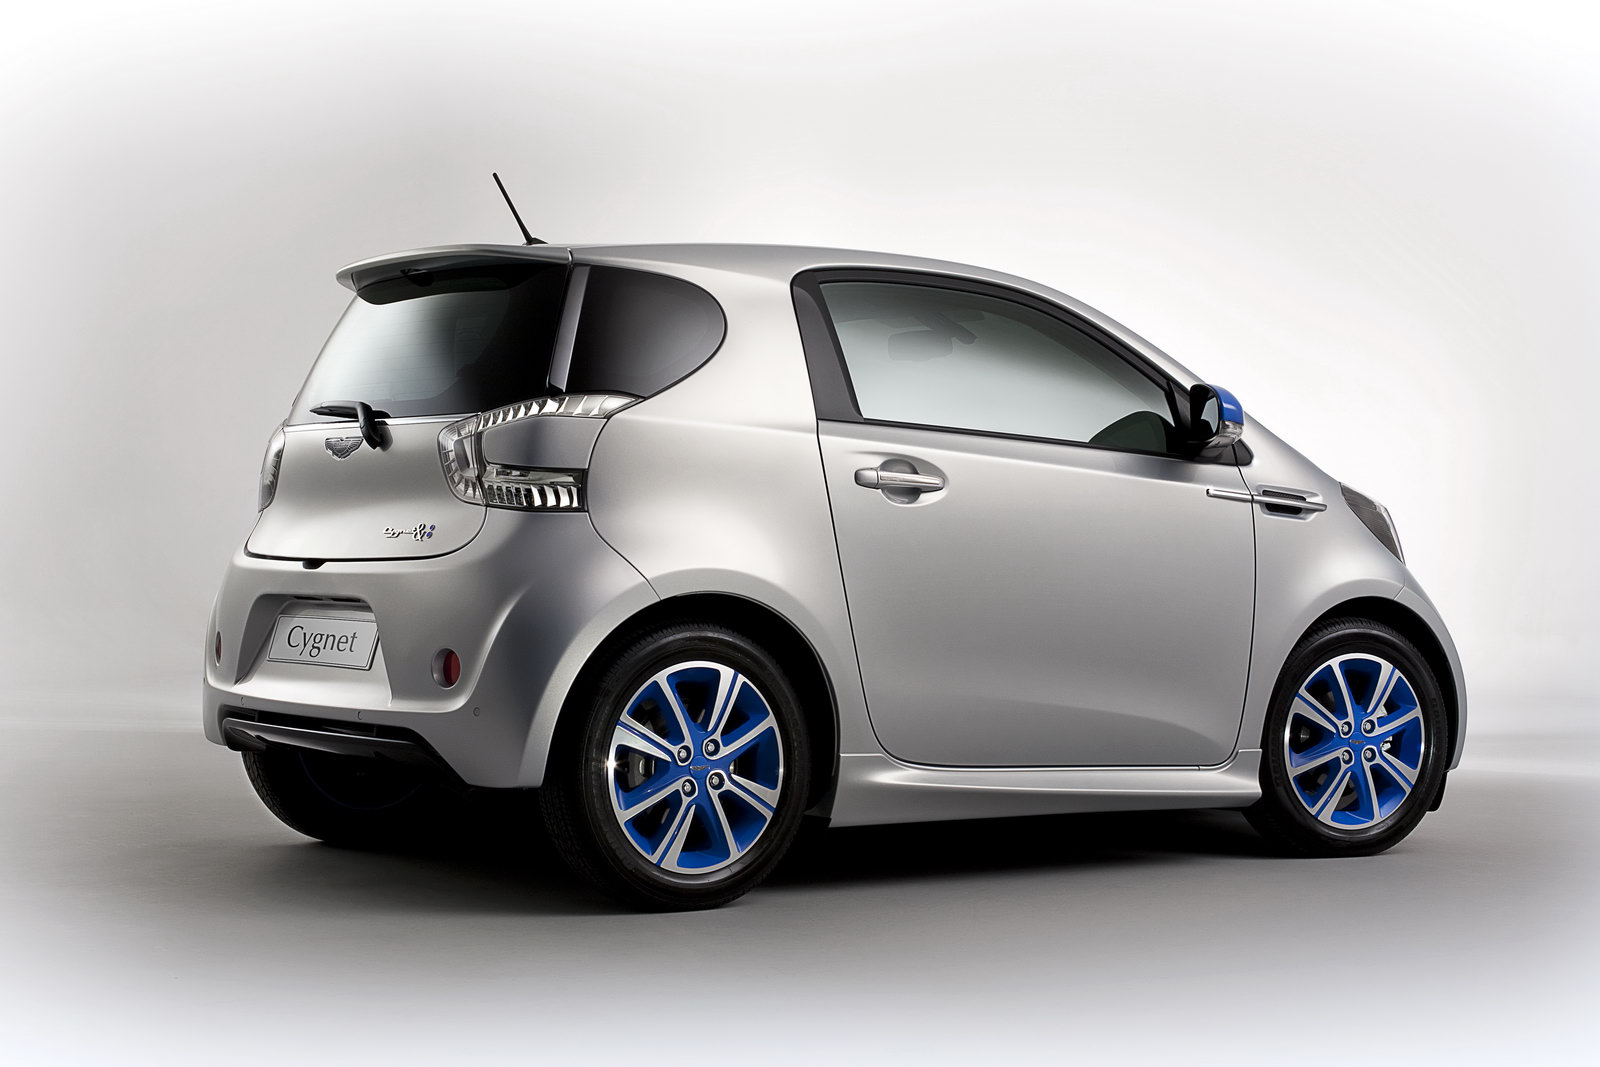 2019 Aston Martin Cygnet Concept photo - 5